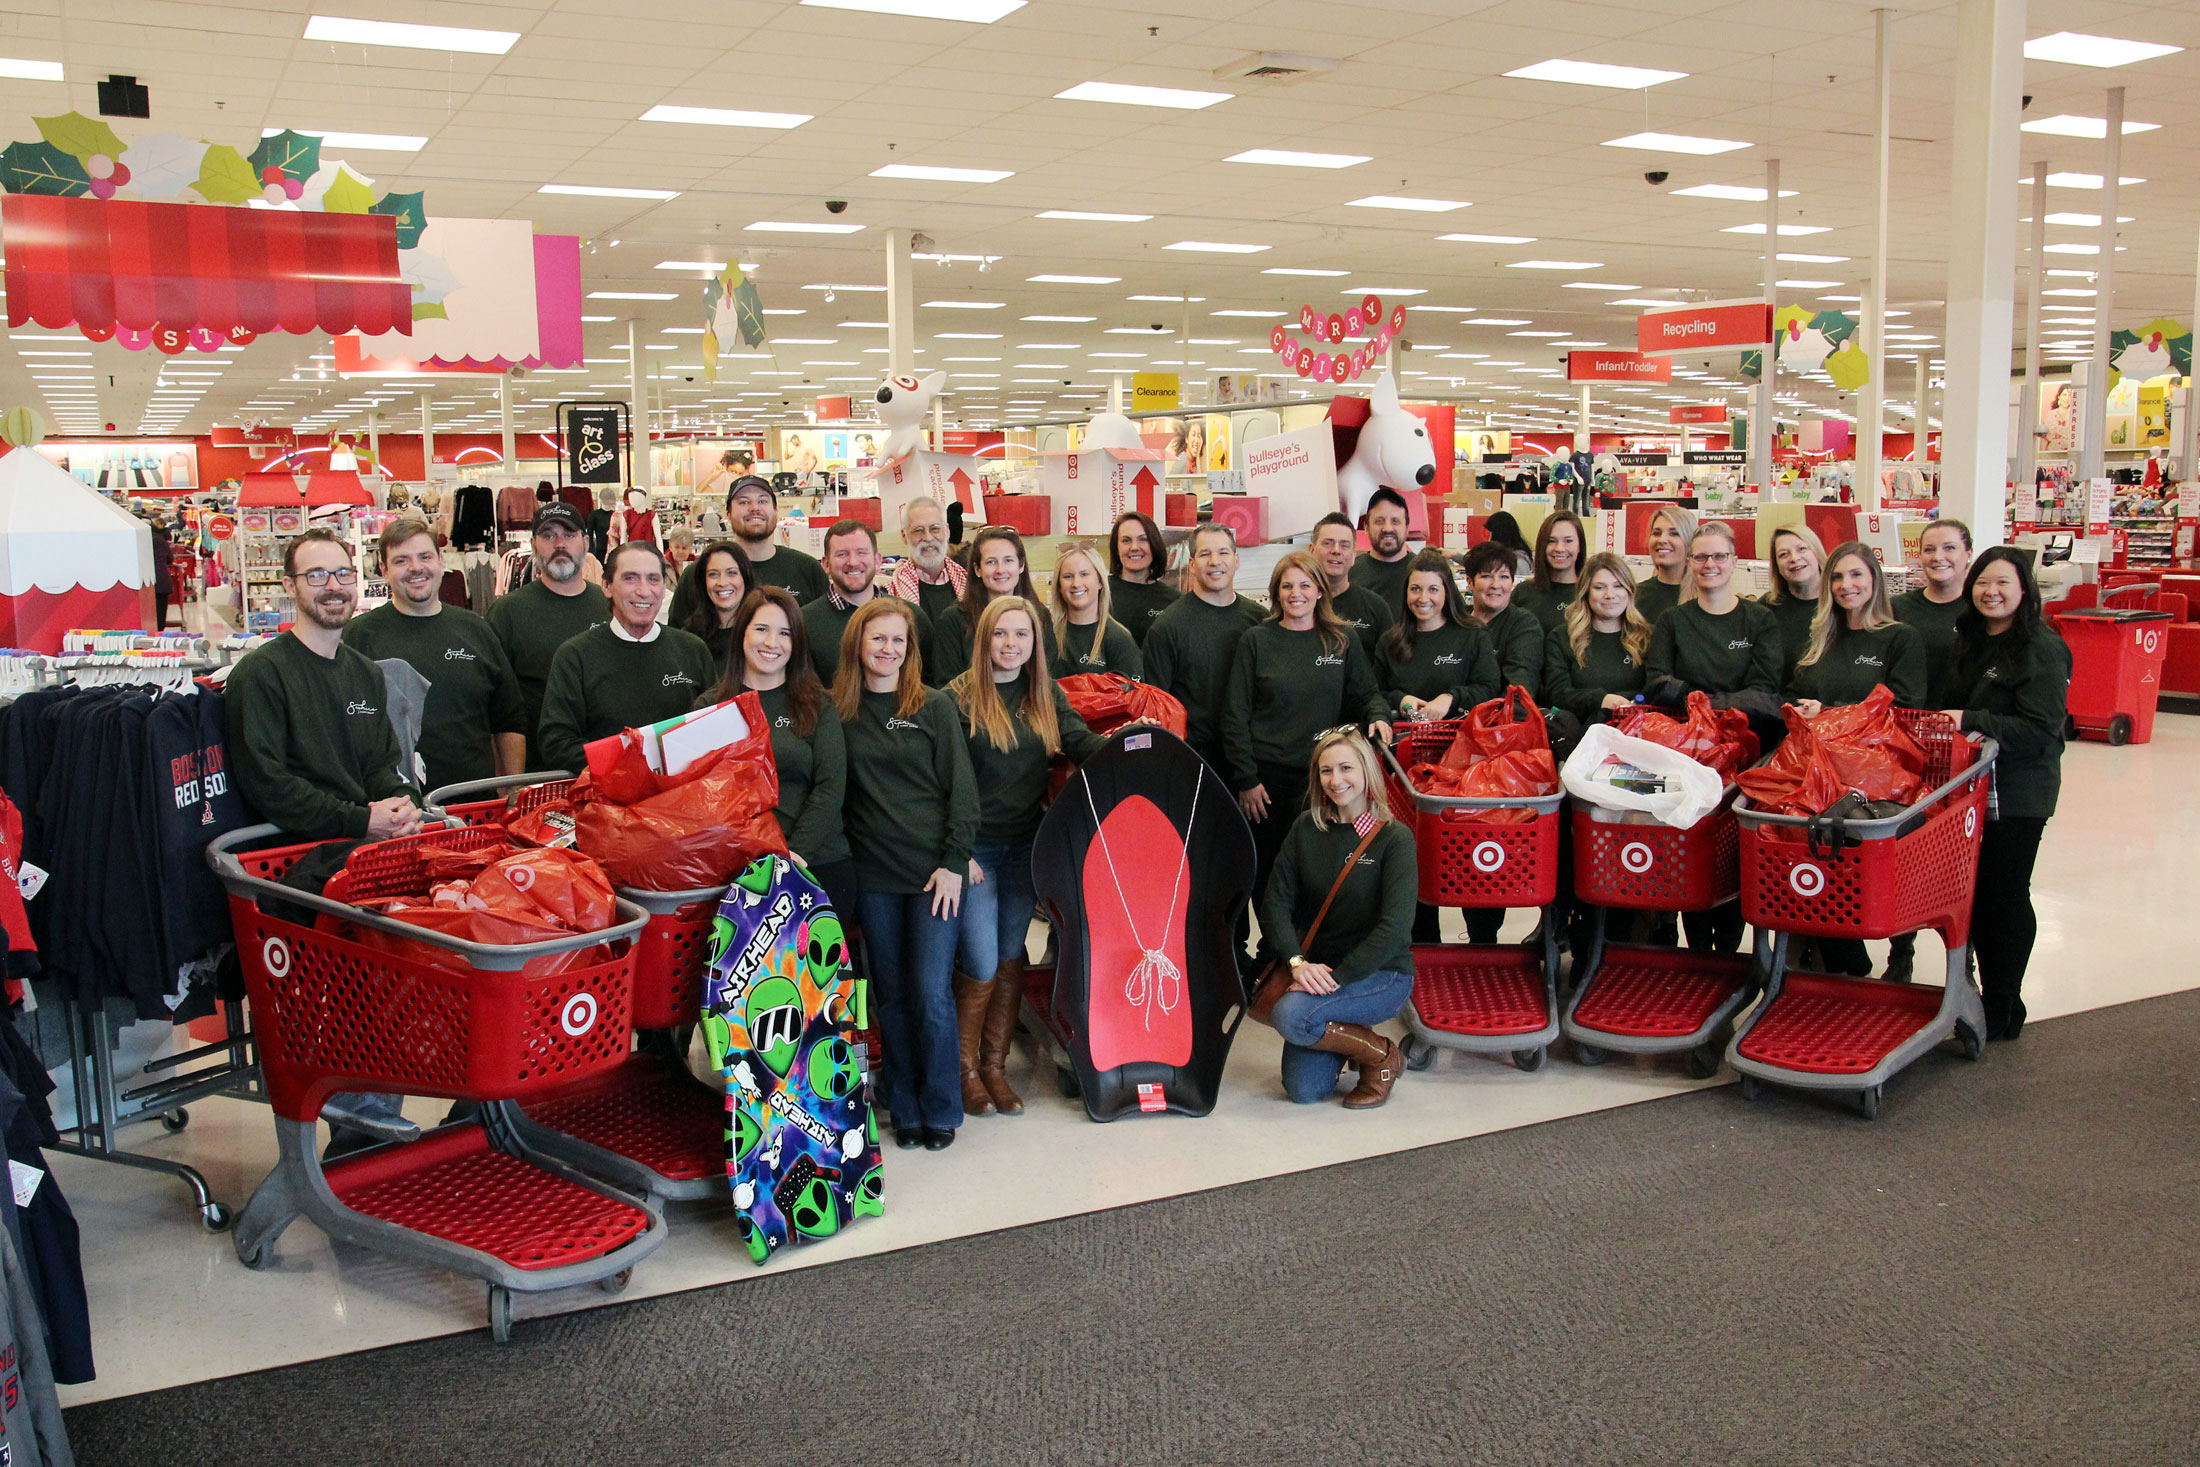 SEG staff poses for a group photo at Target